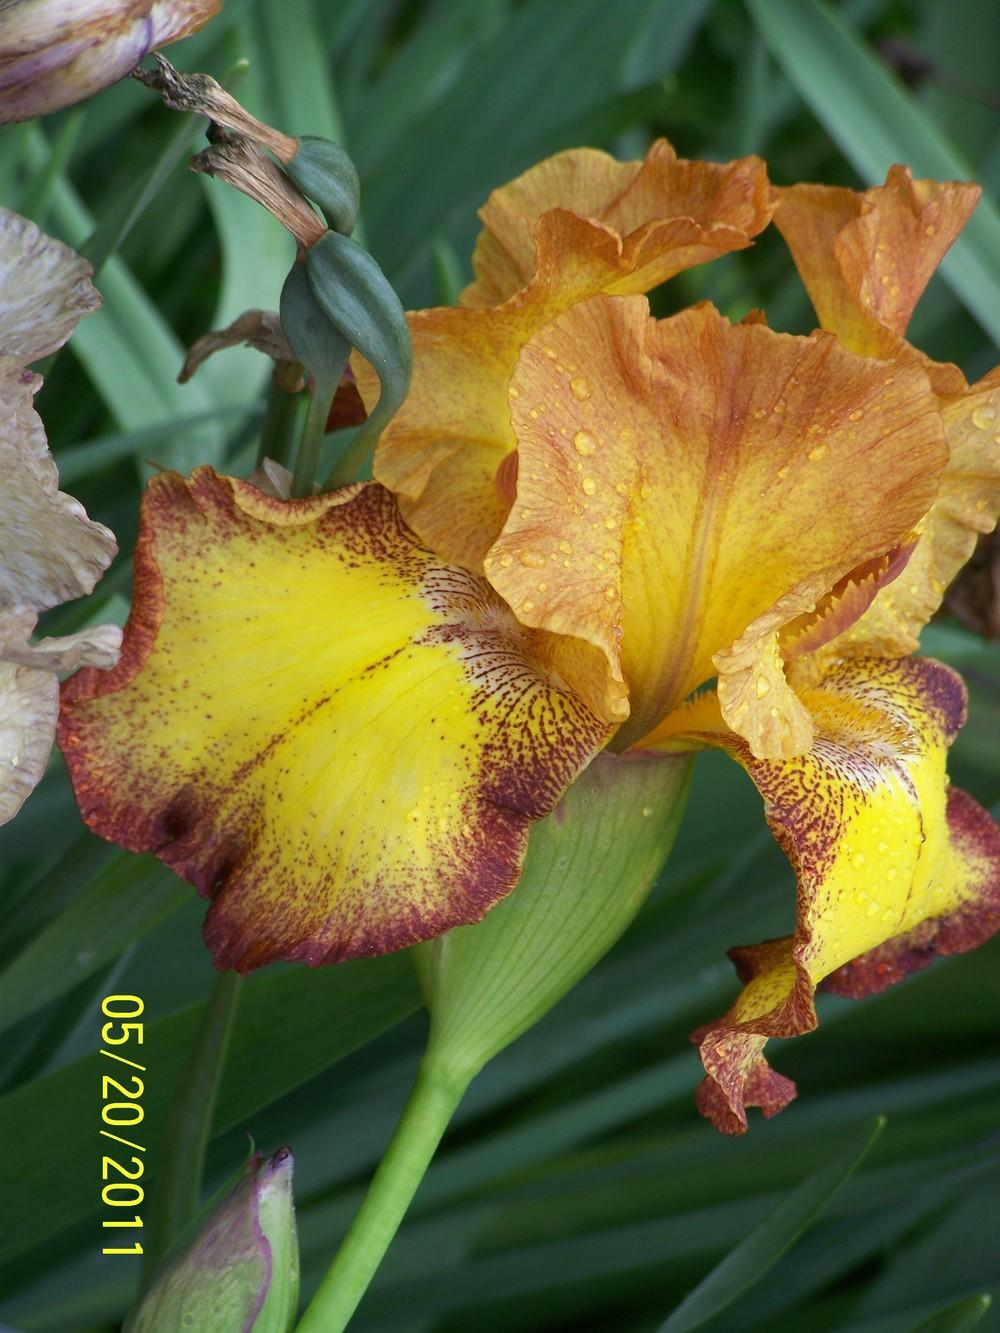 Photo of Tall Bearded Iris (Iris 'Atomic Flame') uploaded by Misawa77